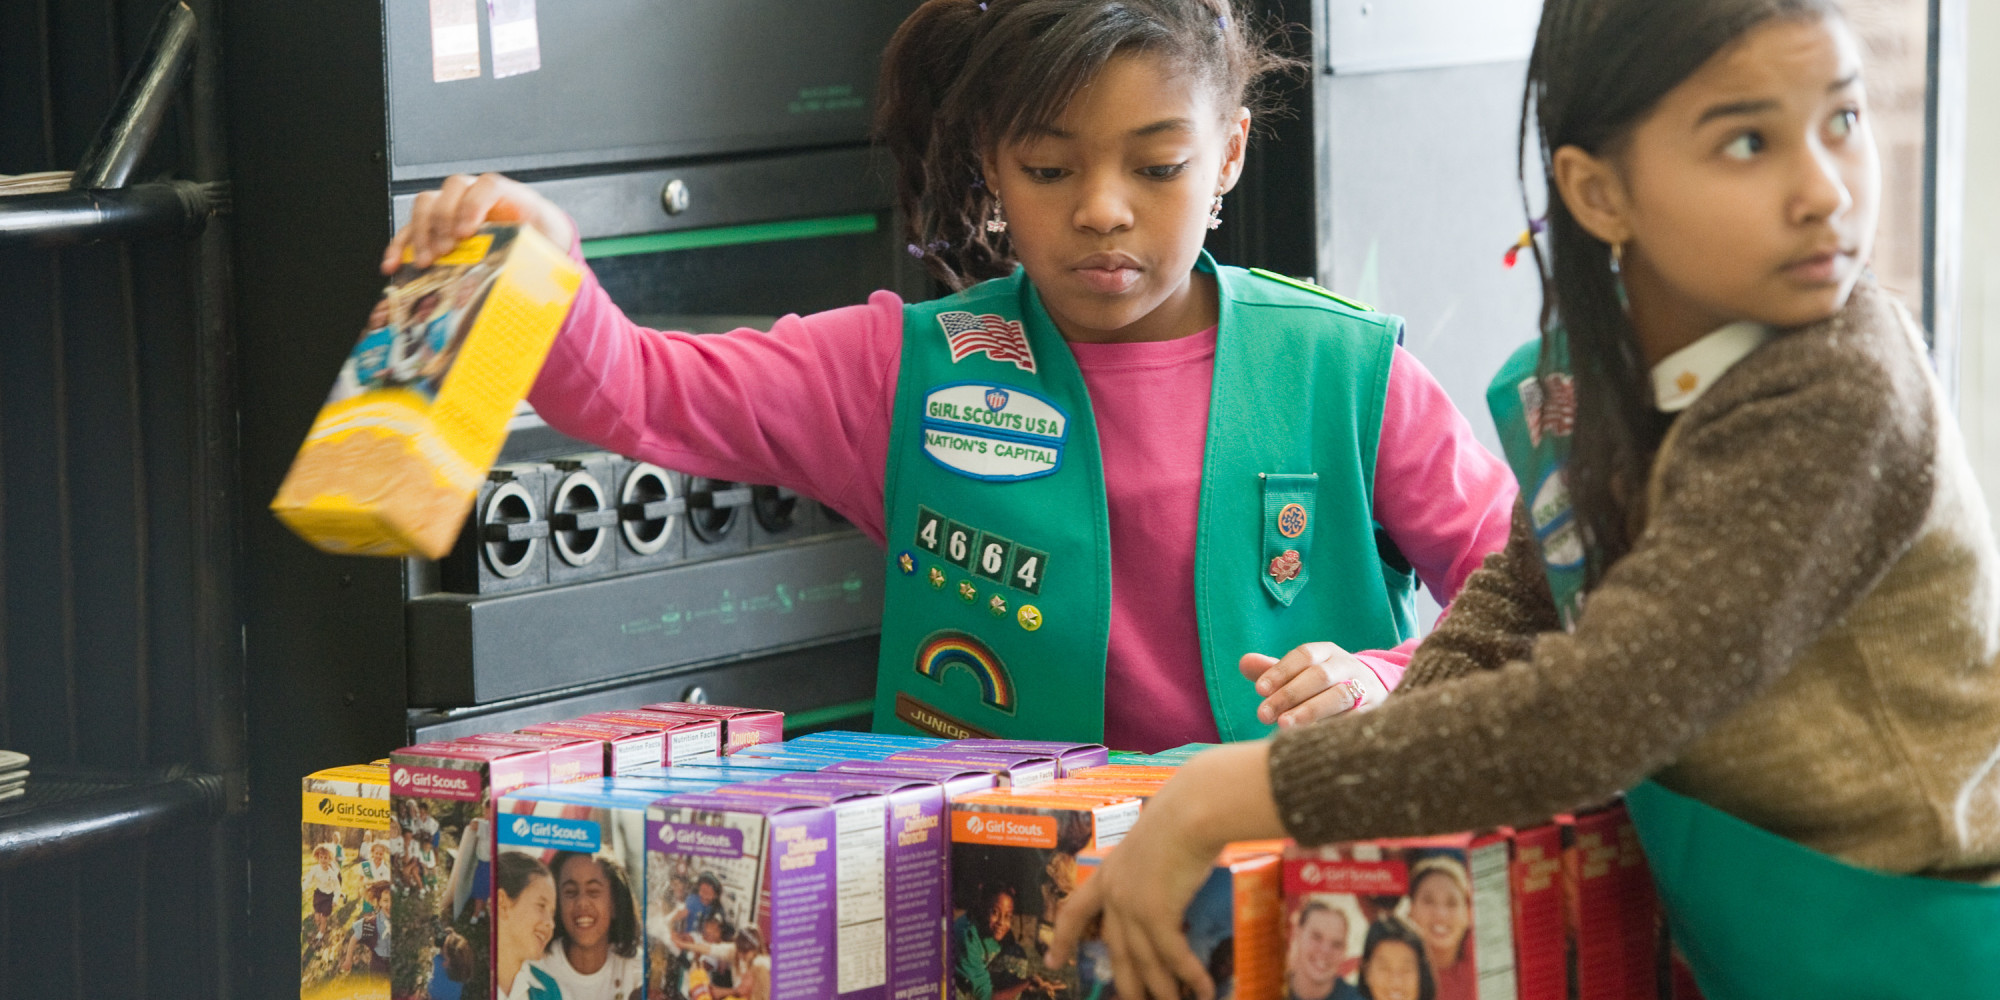 http://i.huffpost.com/gen/1089060/thumbs/o-GIRL-SCOUTS-COOKIES-facebook.jpg